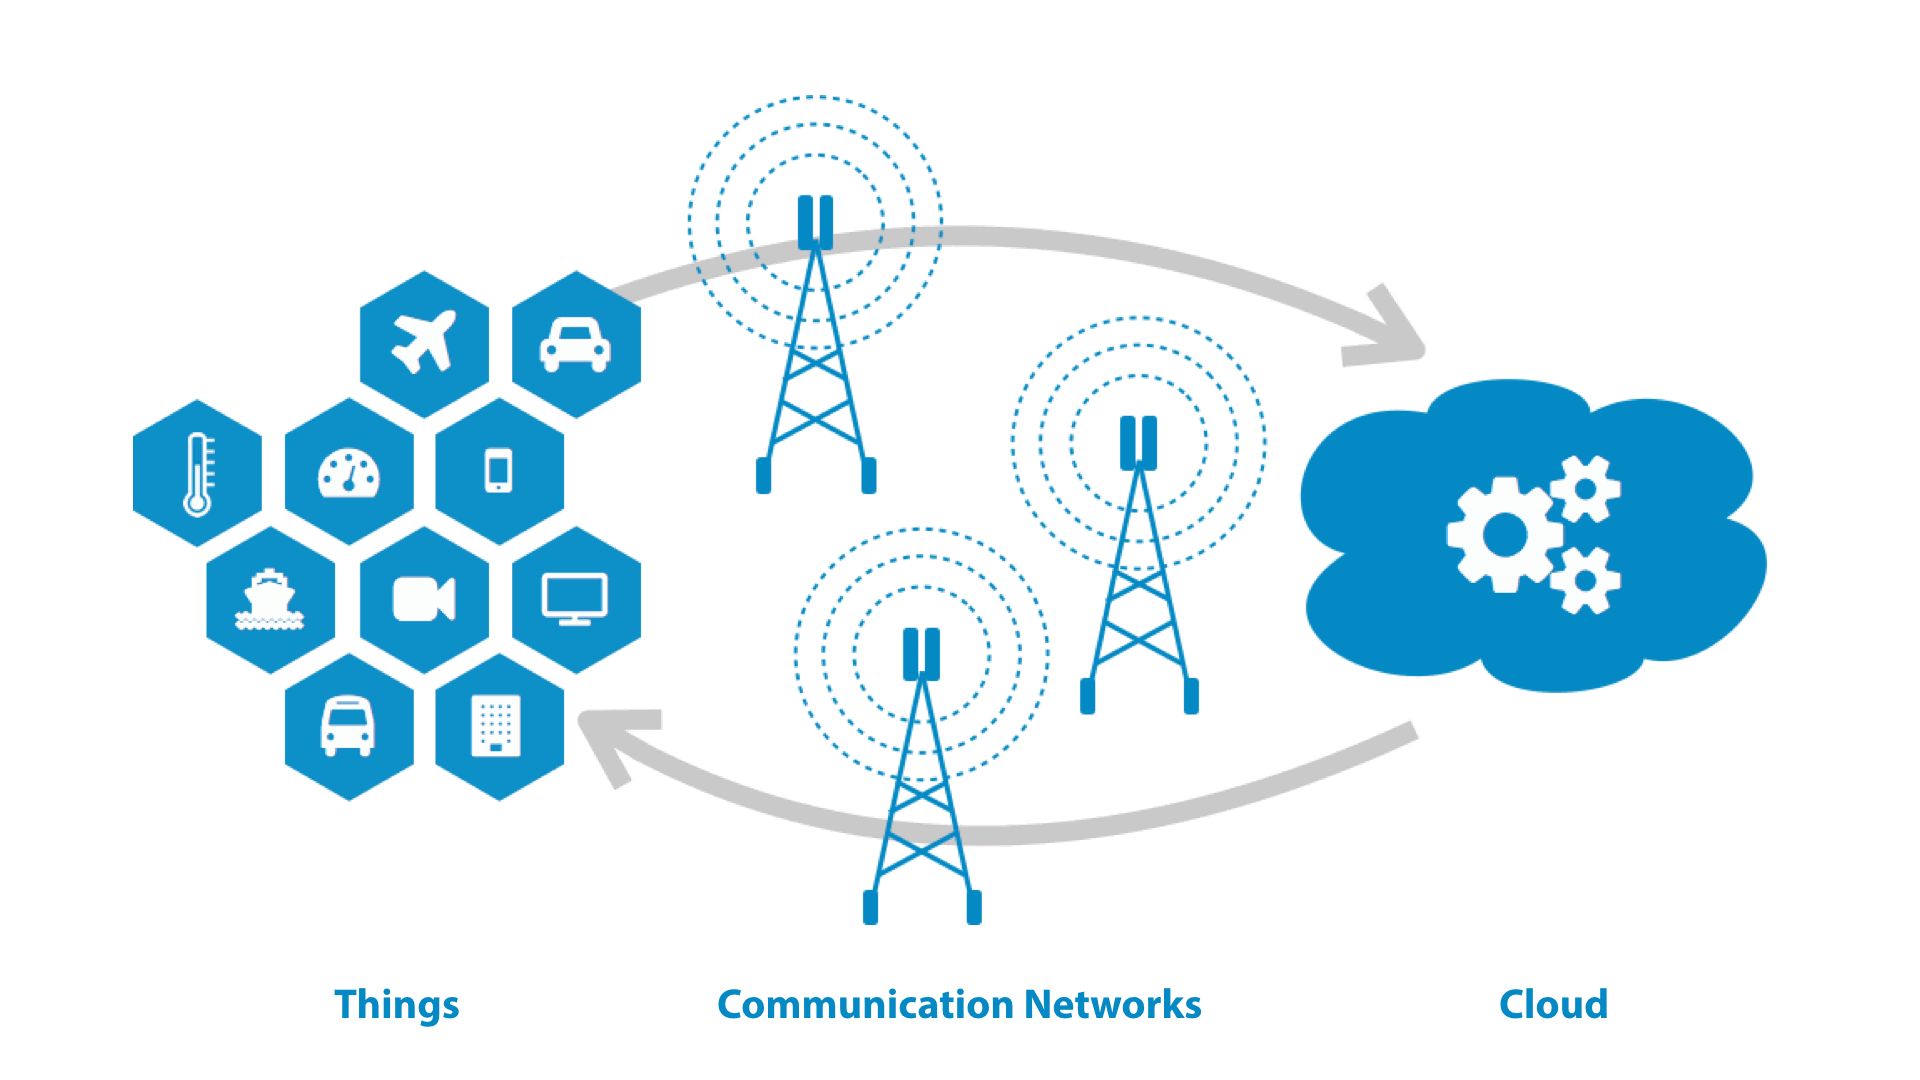 The Infrastructure of Edge Computing